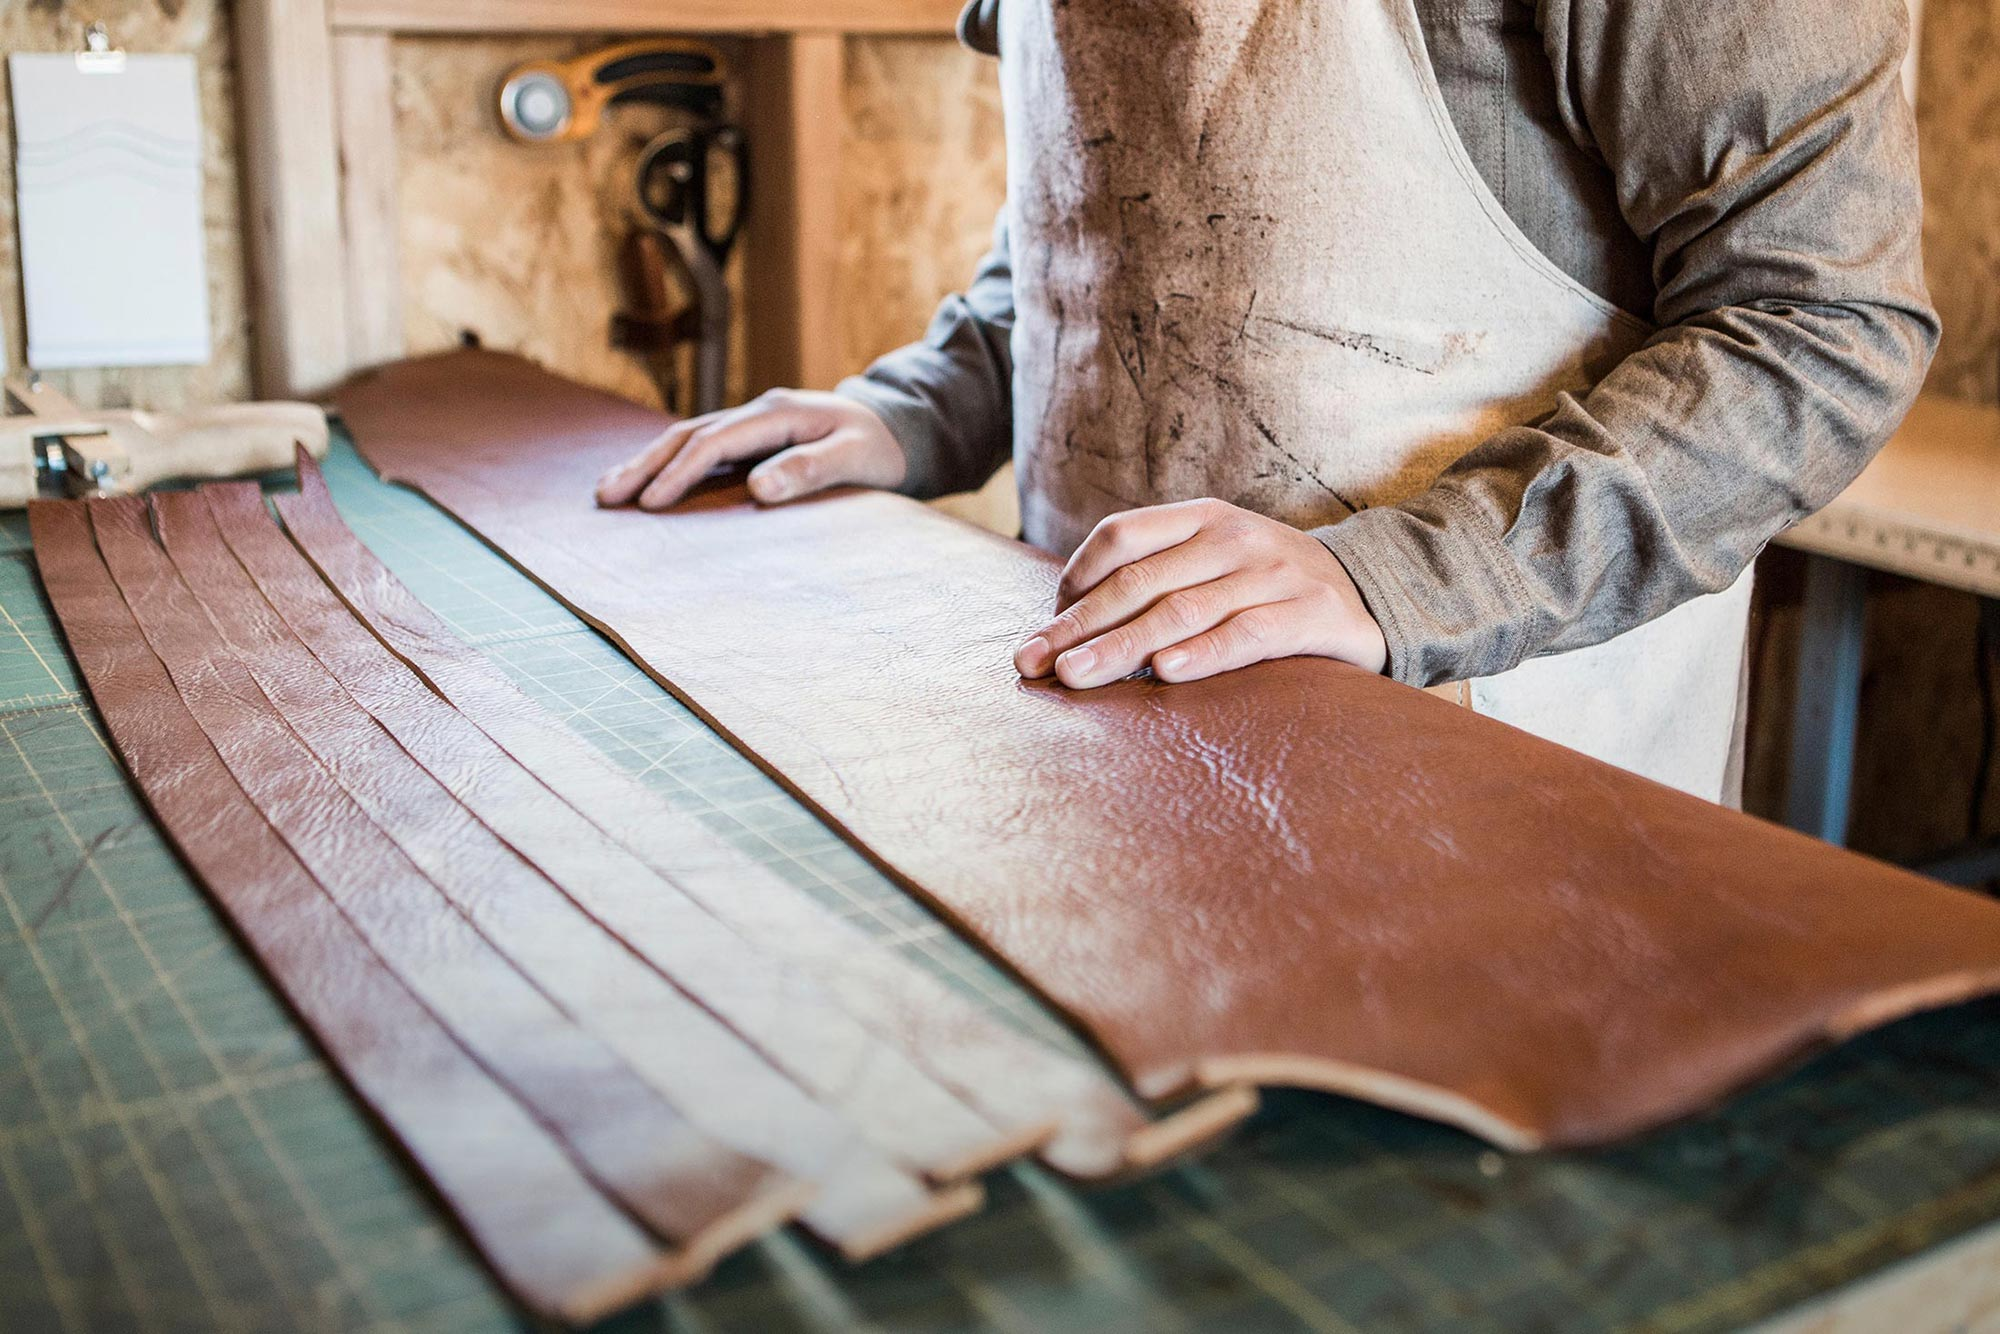 Leather is under environmental scrutiny, and that's a good thing